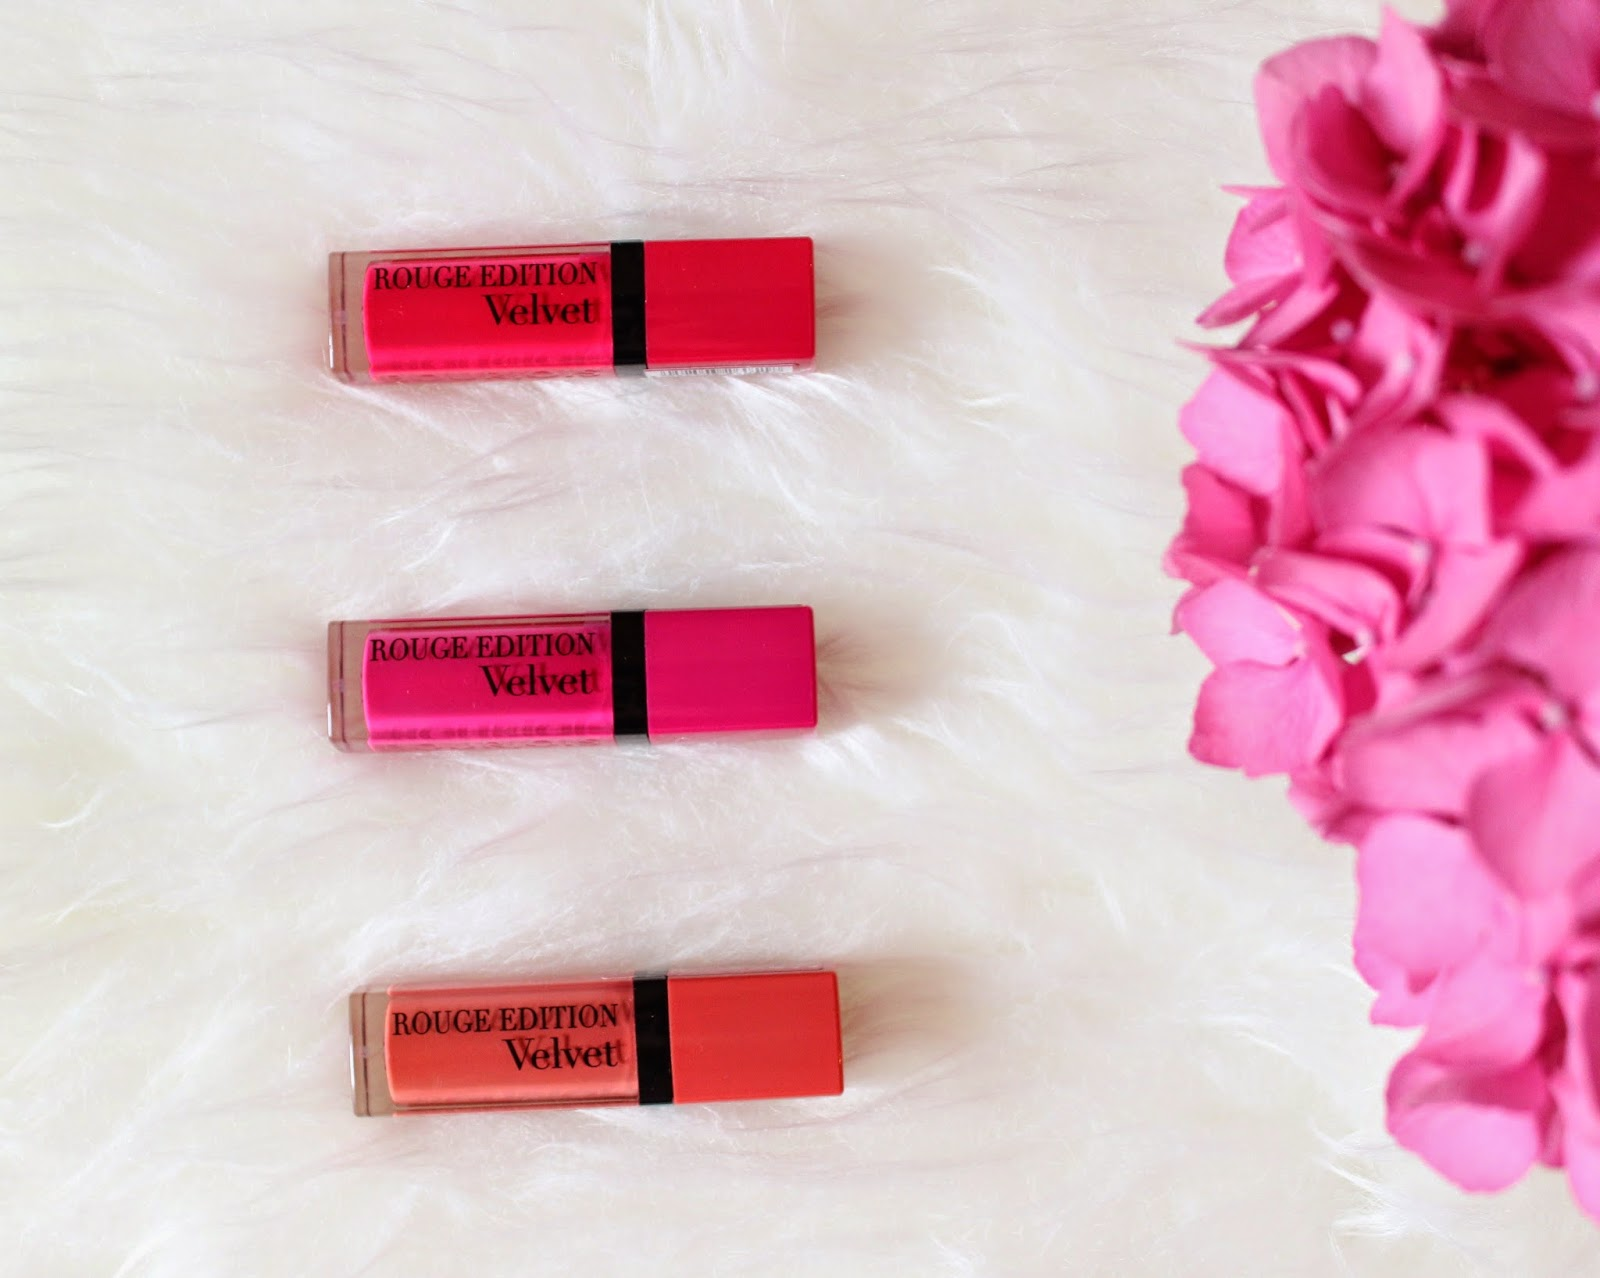 Bourjois-Rouge-Edition-Velvet-Review